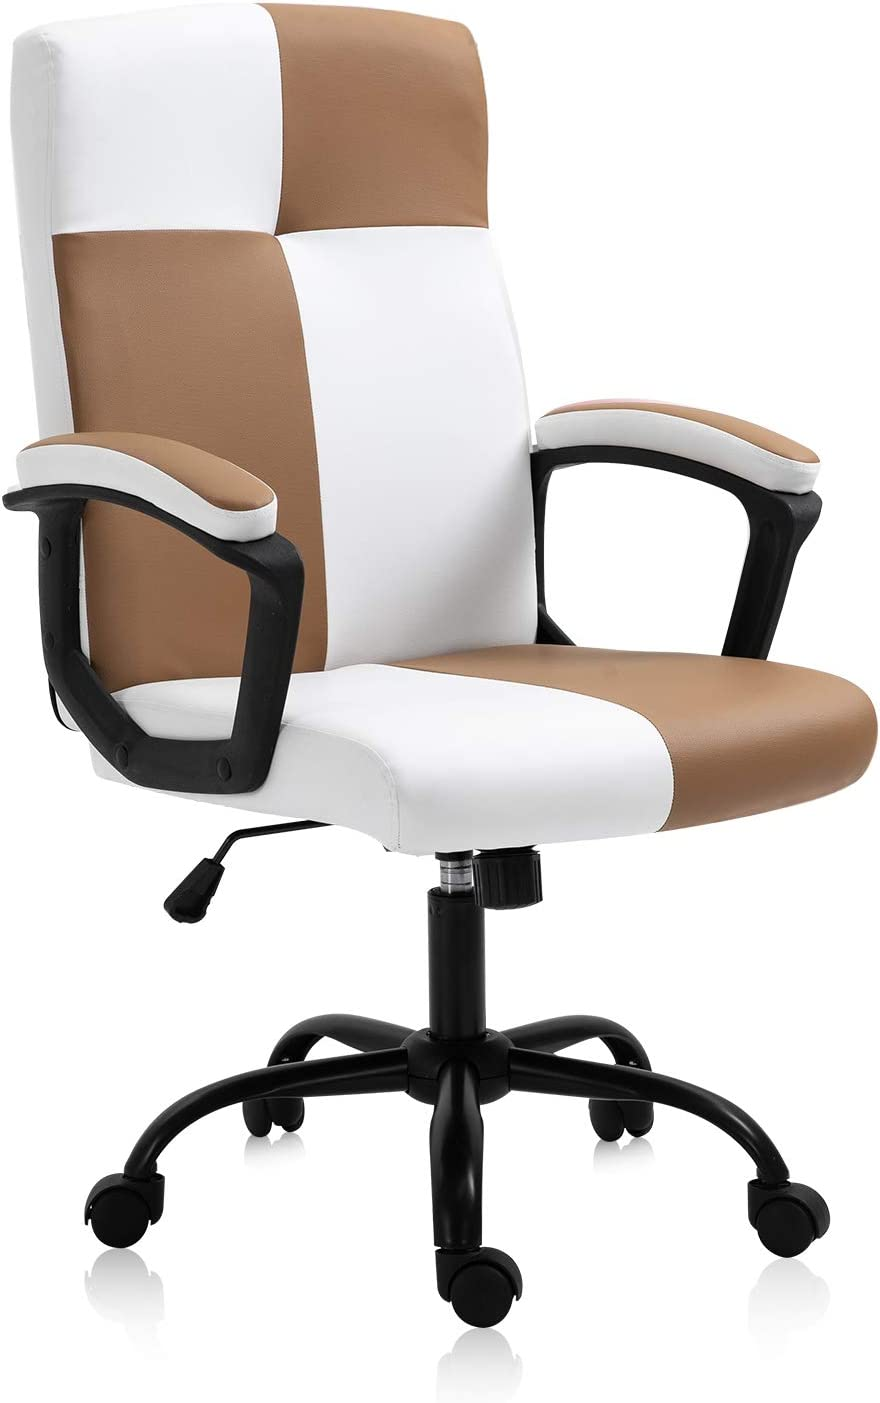 KERMS Mid-Back Ergonomic Office Faux PU Leather Chair Executive Computer Desk Chairs Managerial Executive Chairs with Metal Base and Padded Armrests (Khaki & White): Kitchen & Dining